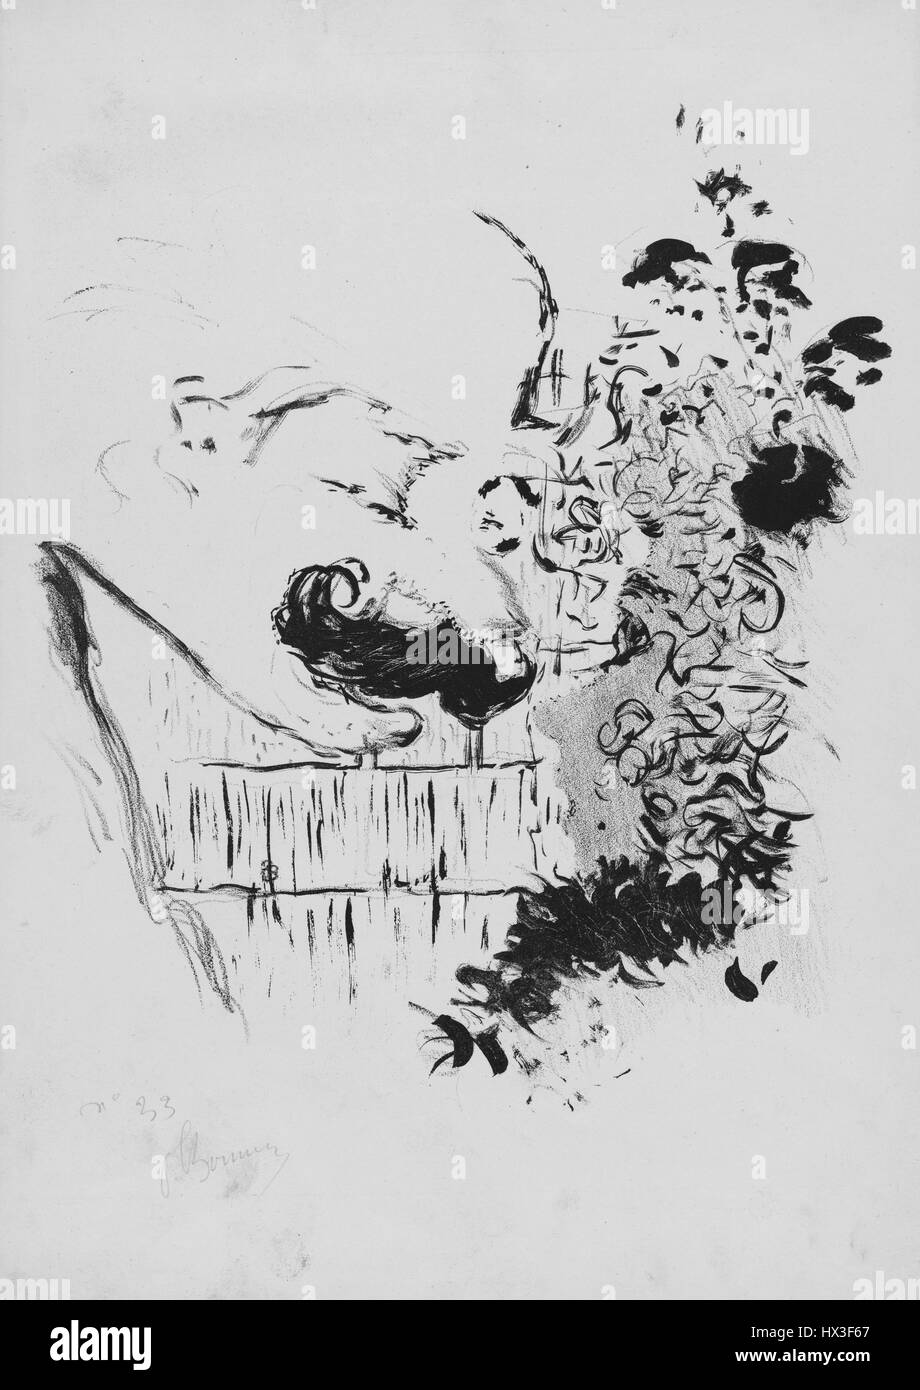 Abstract work on paper by French painter Pierre Bonnard, 1893. From the New York Public Library. - Stock Image